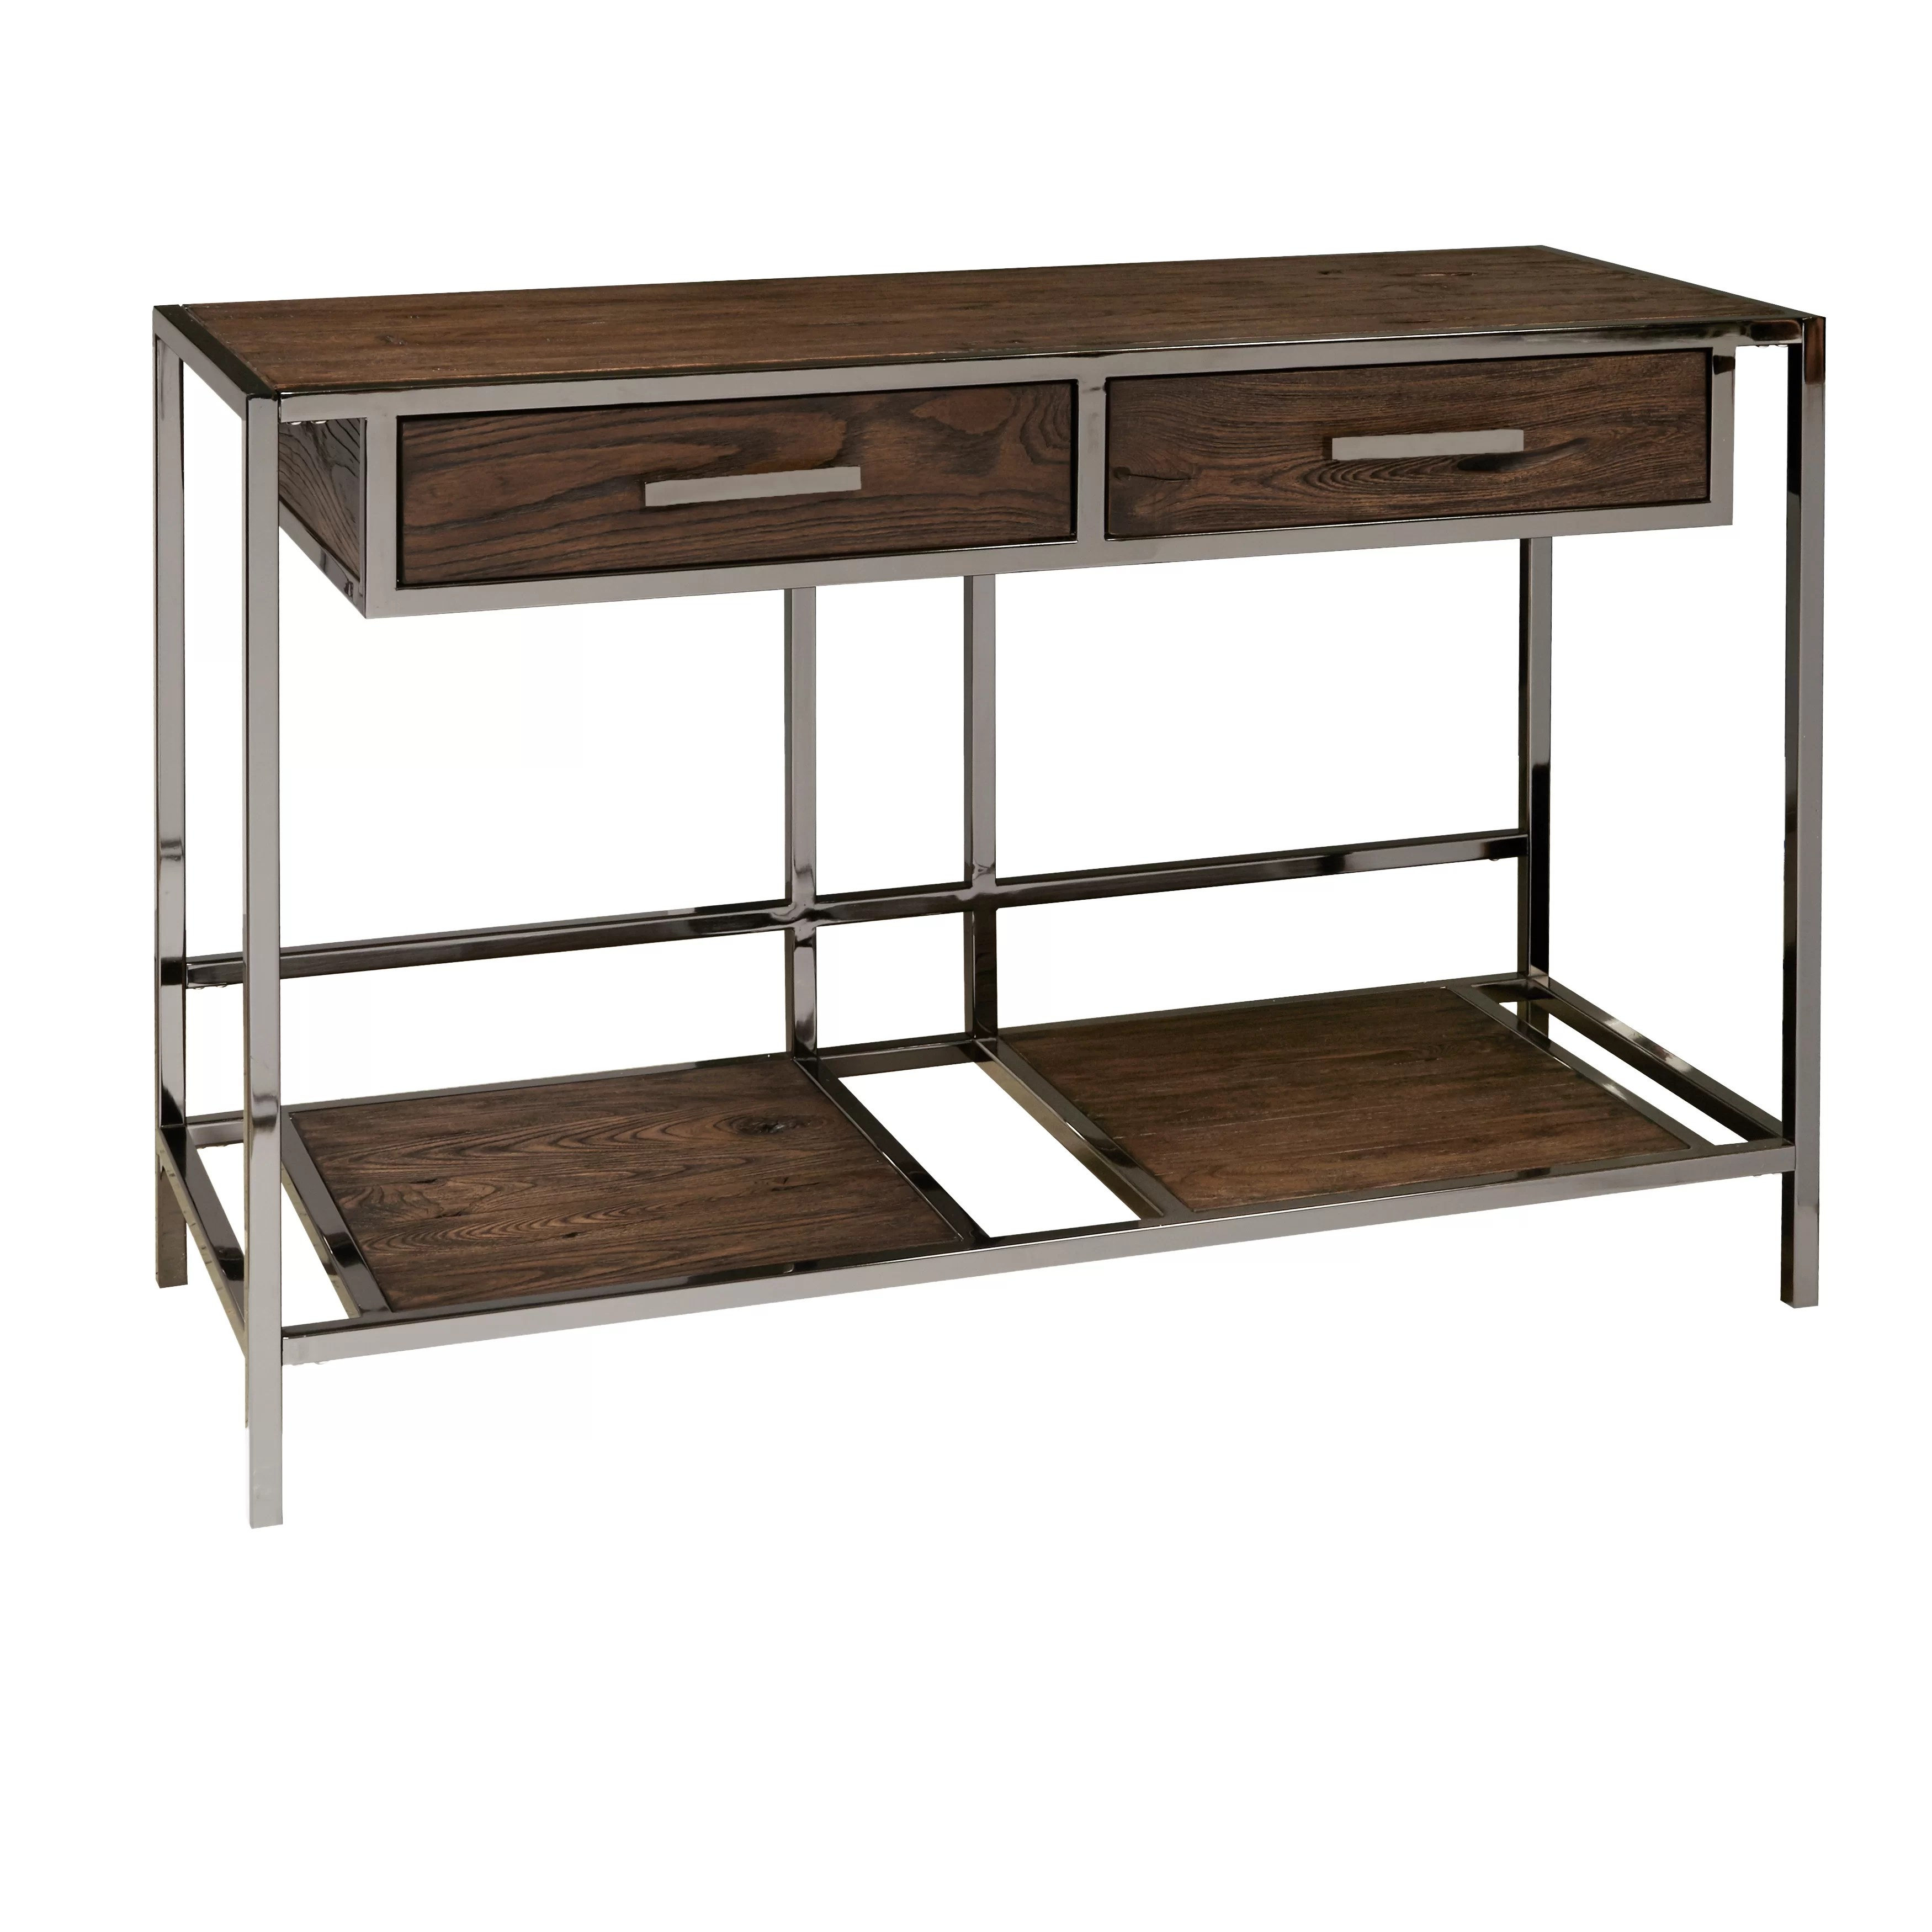 Sofa Modern Falkner Modern Industrial Style Wood And Smoked Sofa Console Table